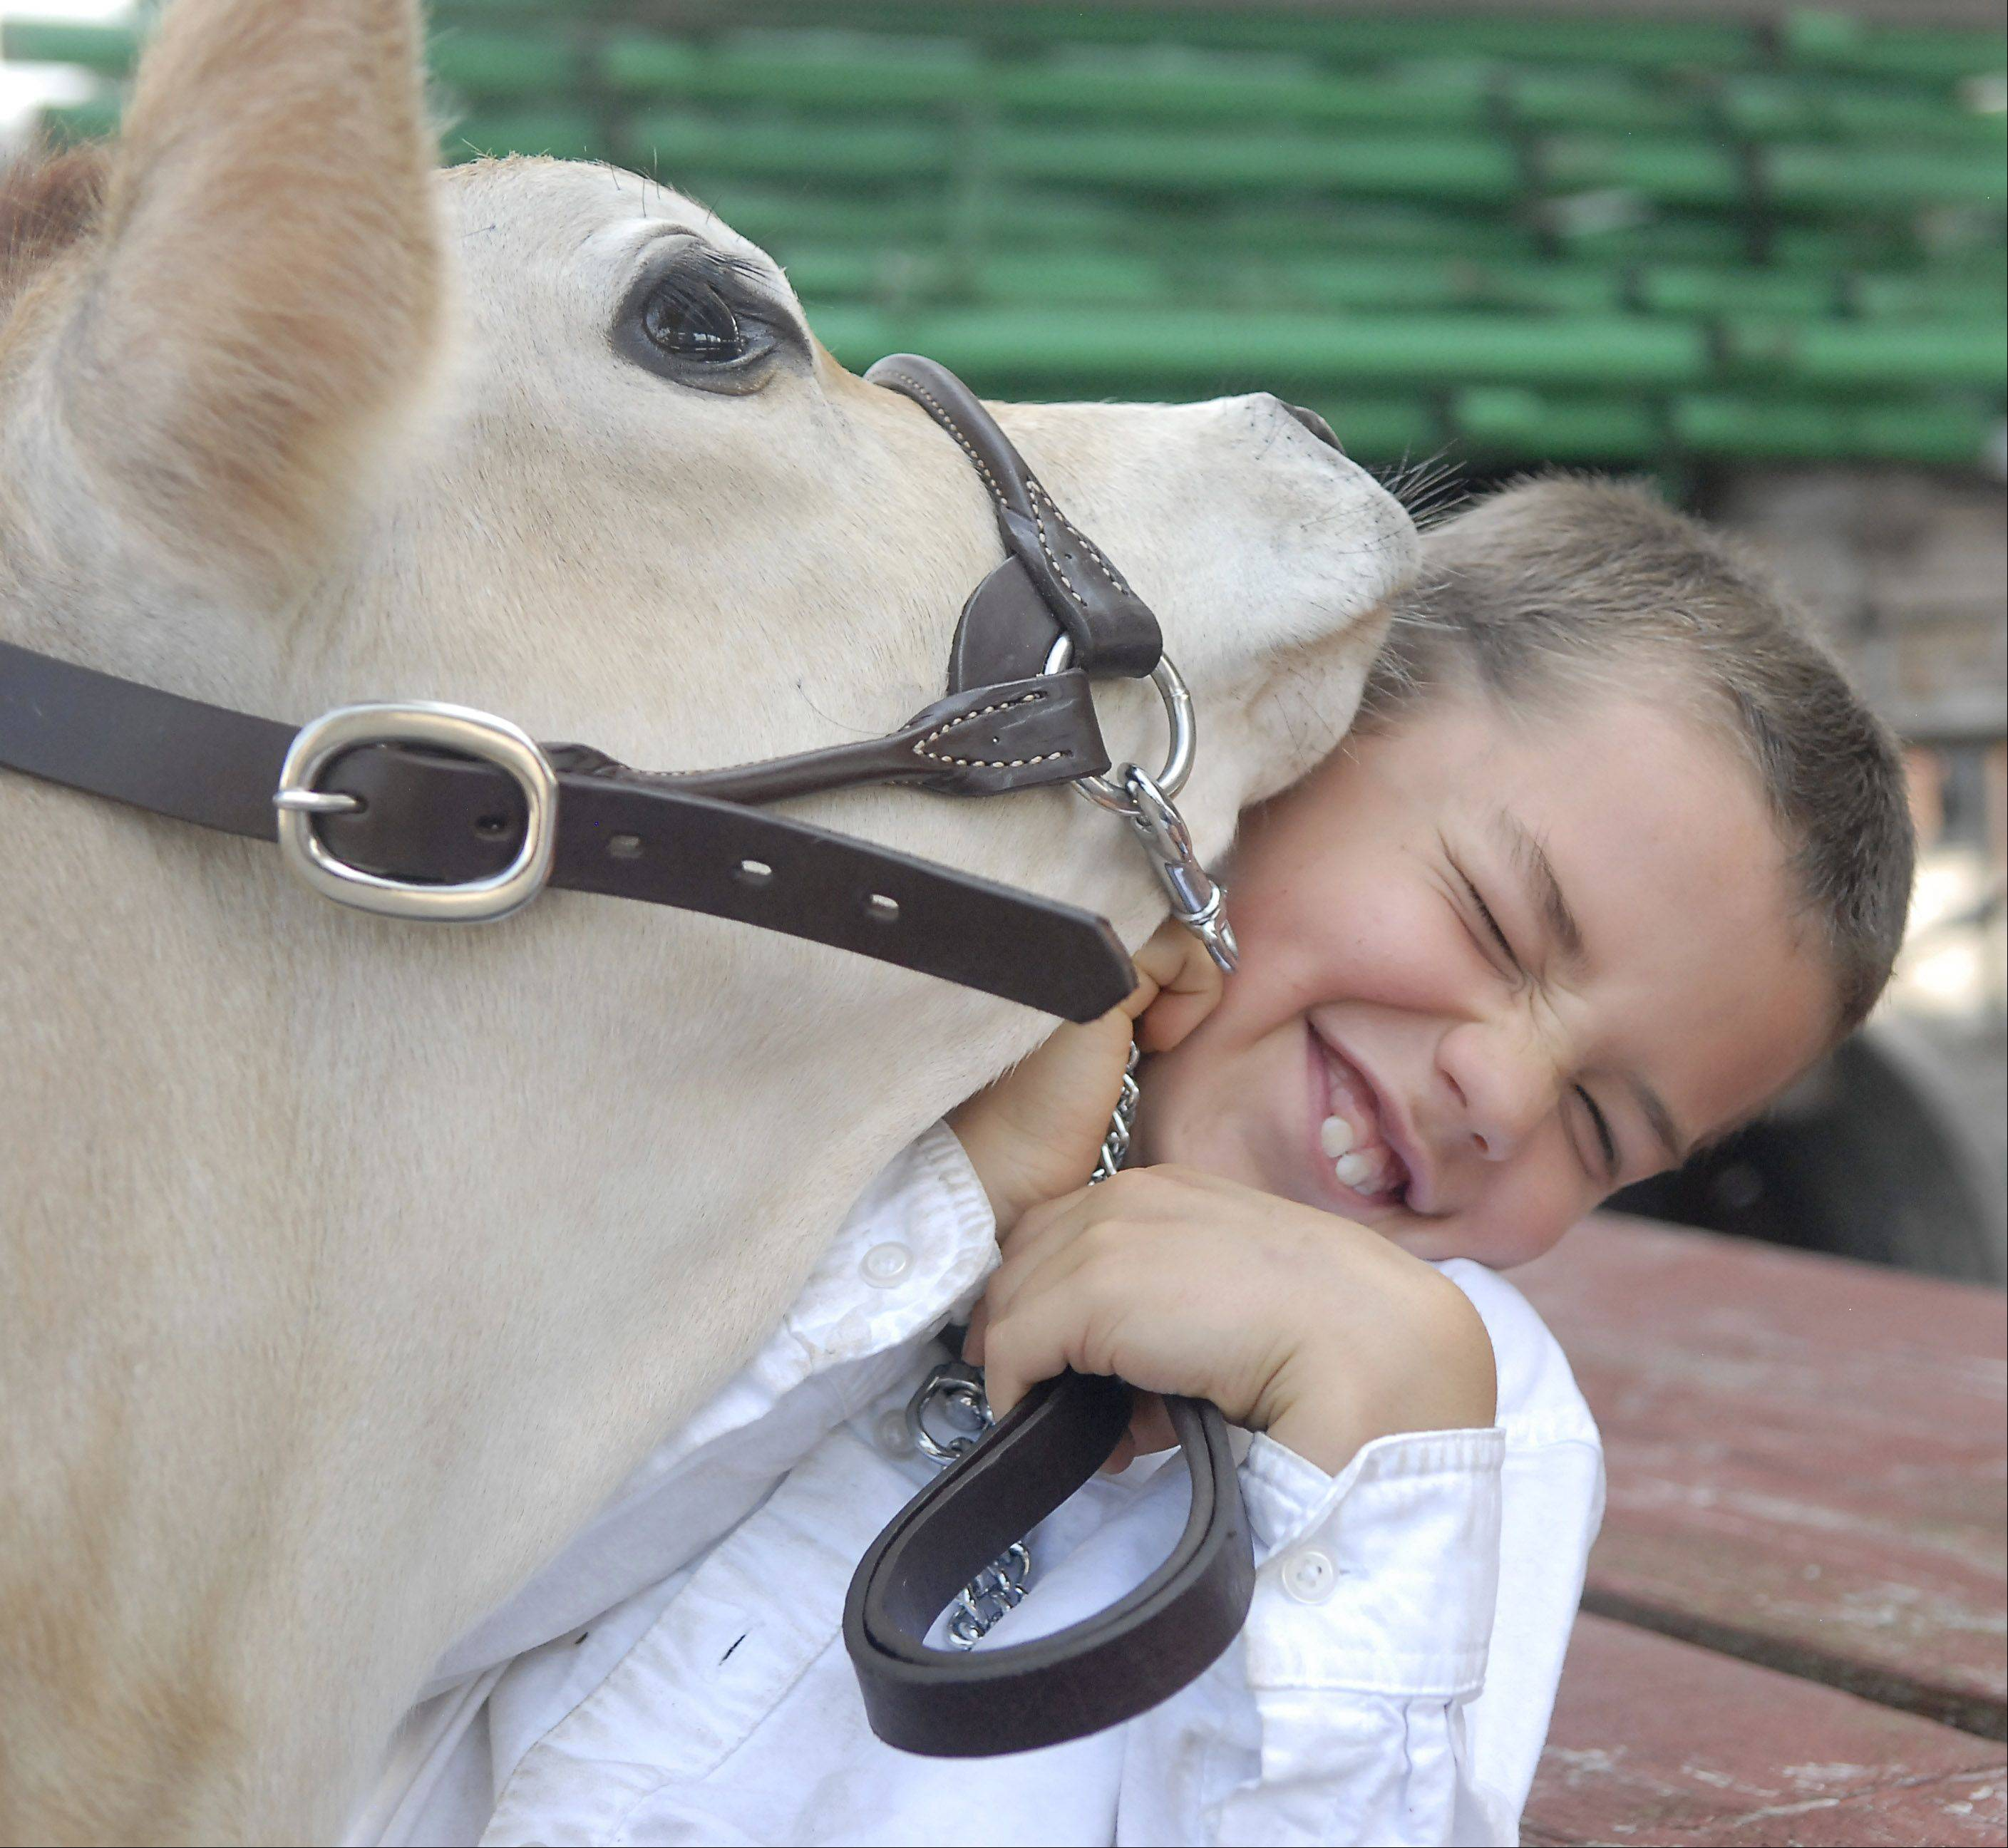 "Paden Thompson, 8, of St. Charles, gets smothered with kisses from four-month-old jersey calf, Peanut, while they wait for their turn to show in the Jersey Junior Hefer category at the Kane County Fair on Thursday, July 19. Peanut's sandpaper-like tongue left Paden's cheek a rosy color afterward. Peanut and her sister, Clover, are calves from Primrose Farm in St. Charles. Paden and his sister, Emily, 11, are volunteers and have taken care of the calves ever since they were born. Peanut happened to be born on Paden's birthday. ""I just like sitting with them and working with them,"" says Paden. The 4H program at Primrose Farm gets suburban kids who don't live on a farm a chance to be involved in the farm program."